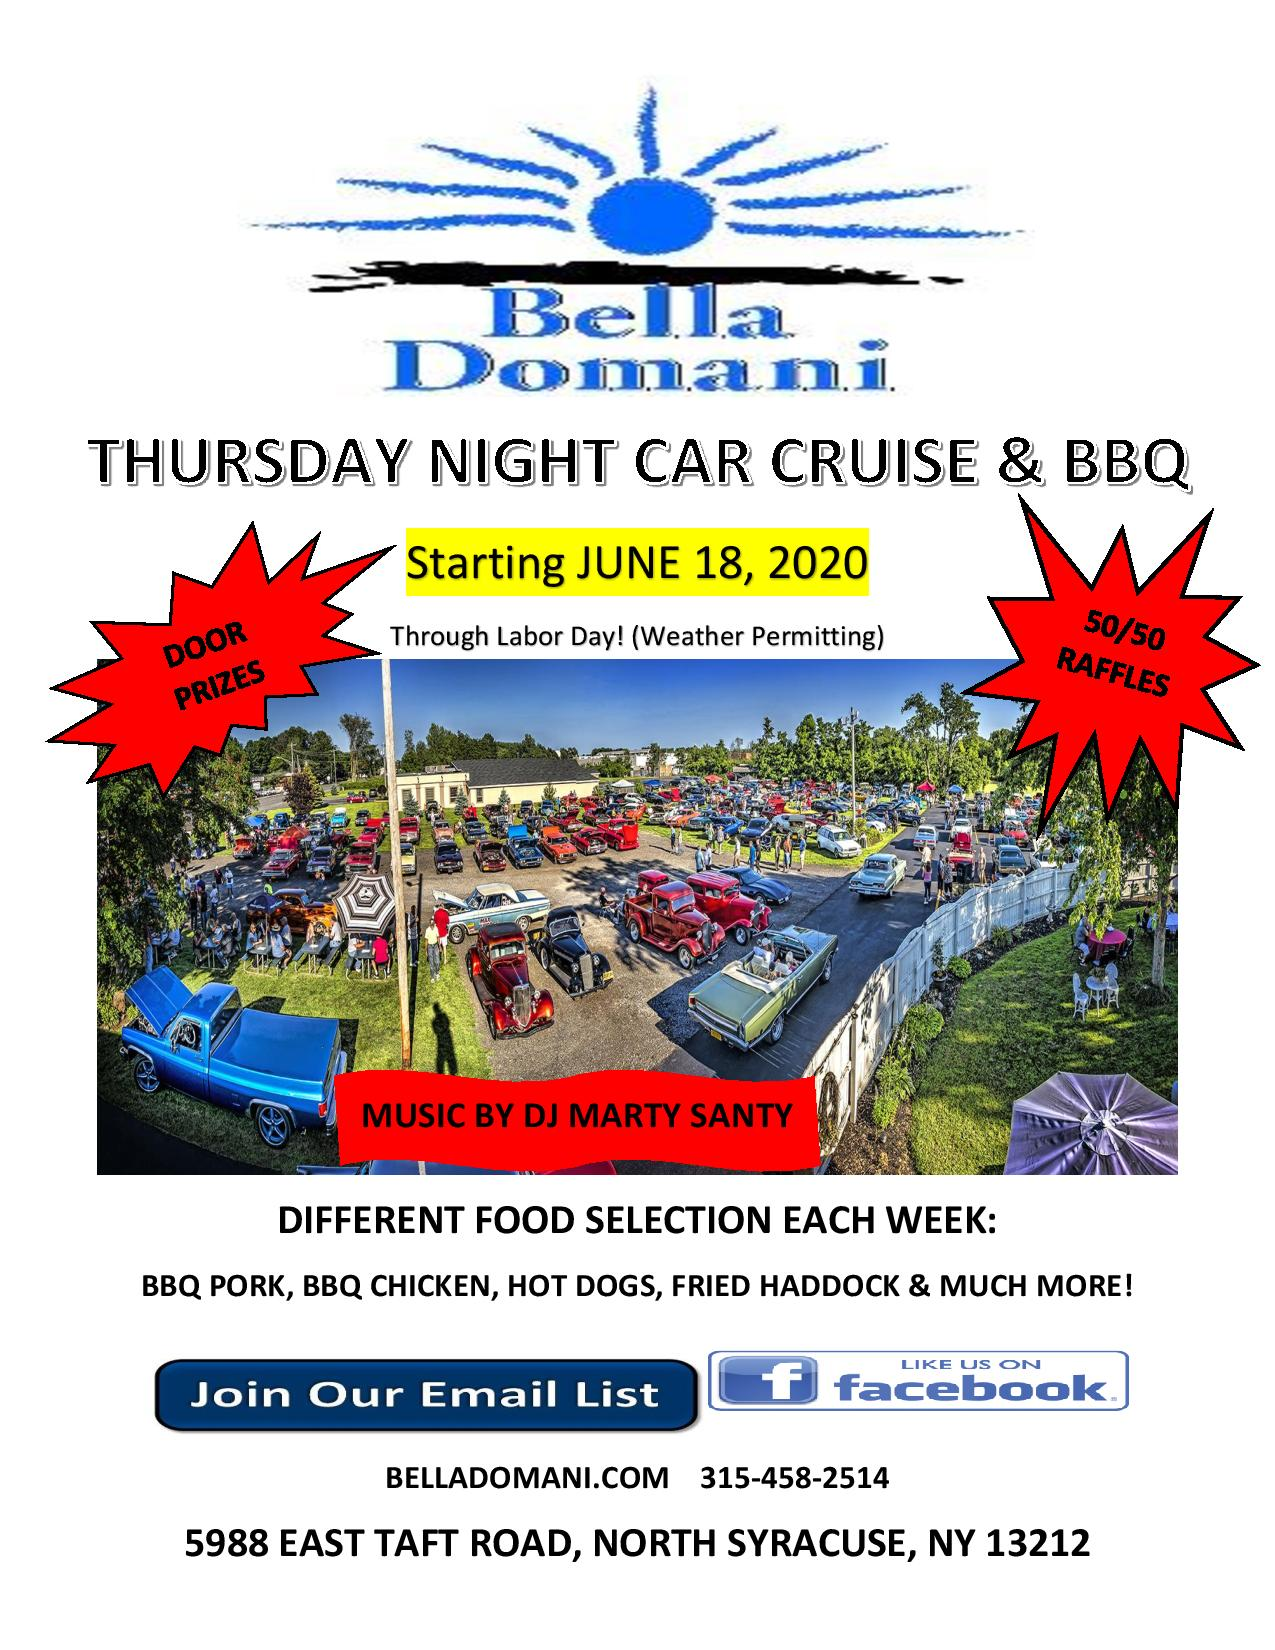 thursday night car cruise and bbq